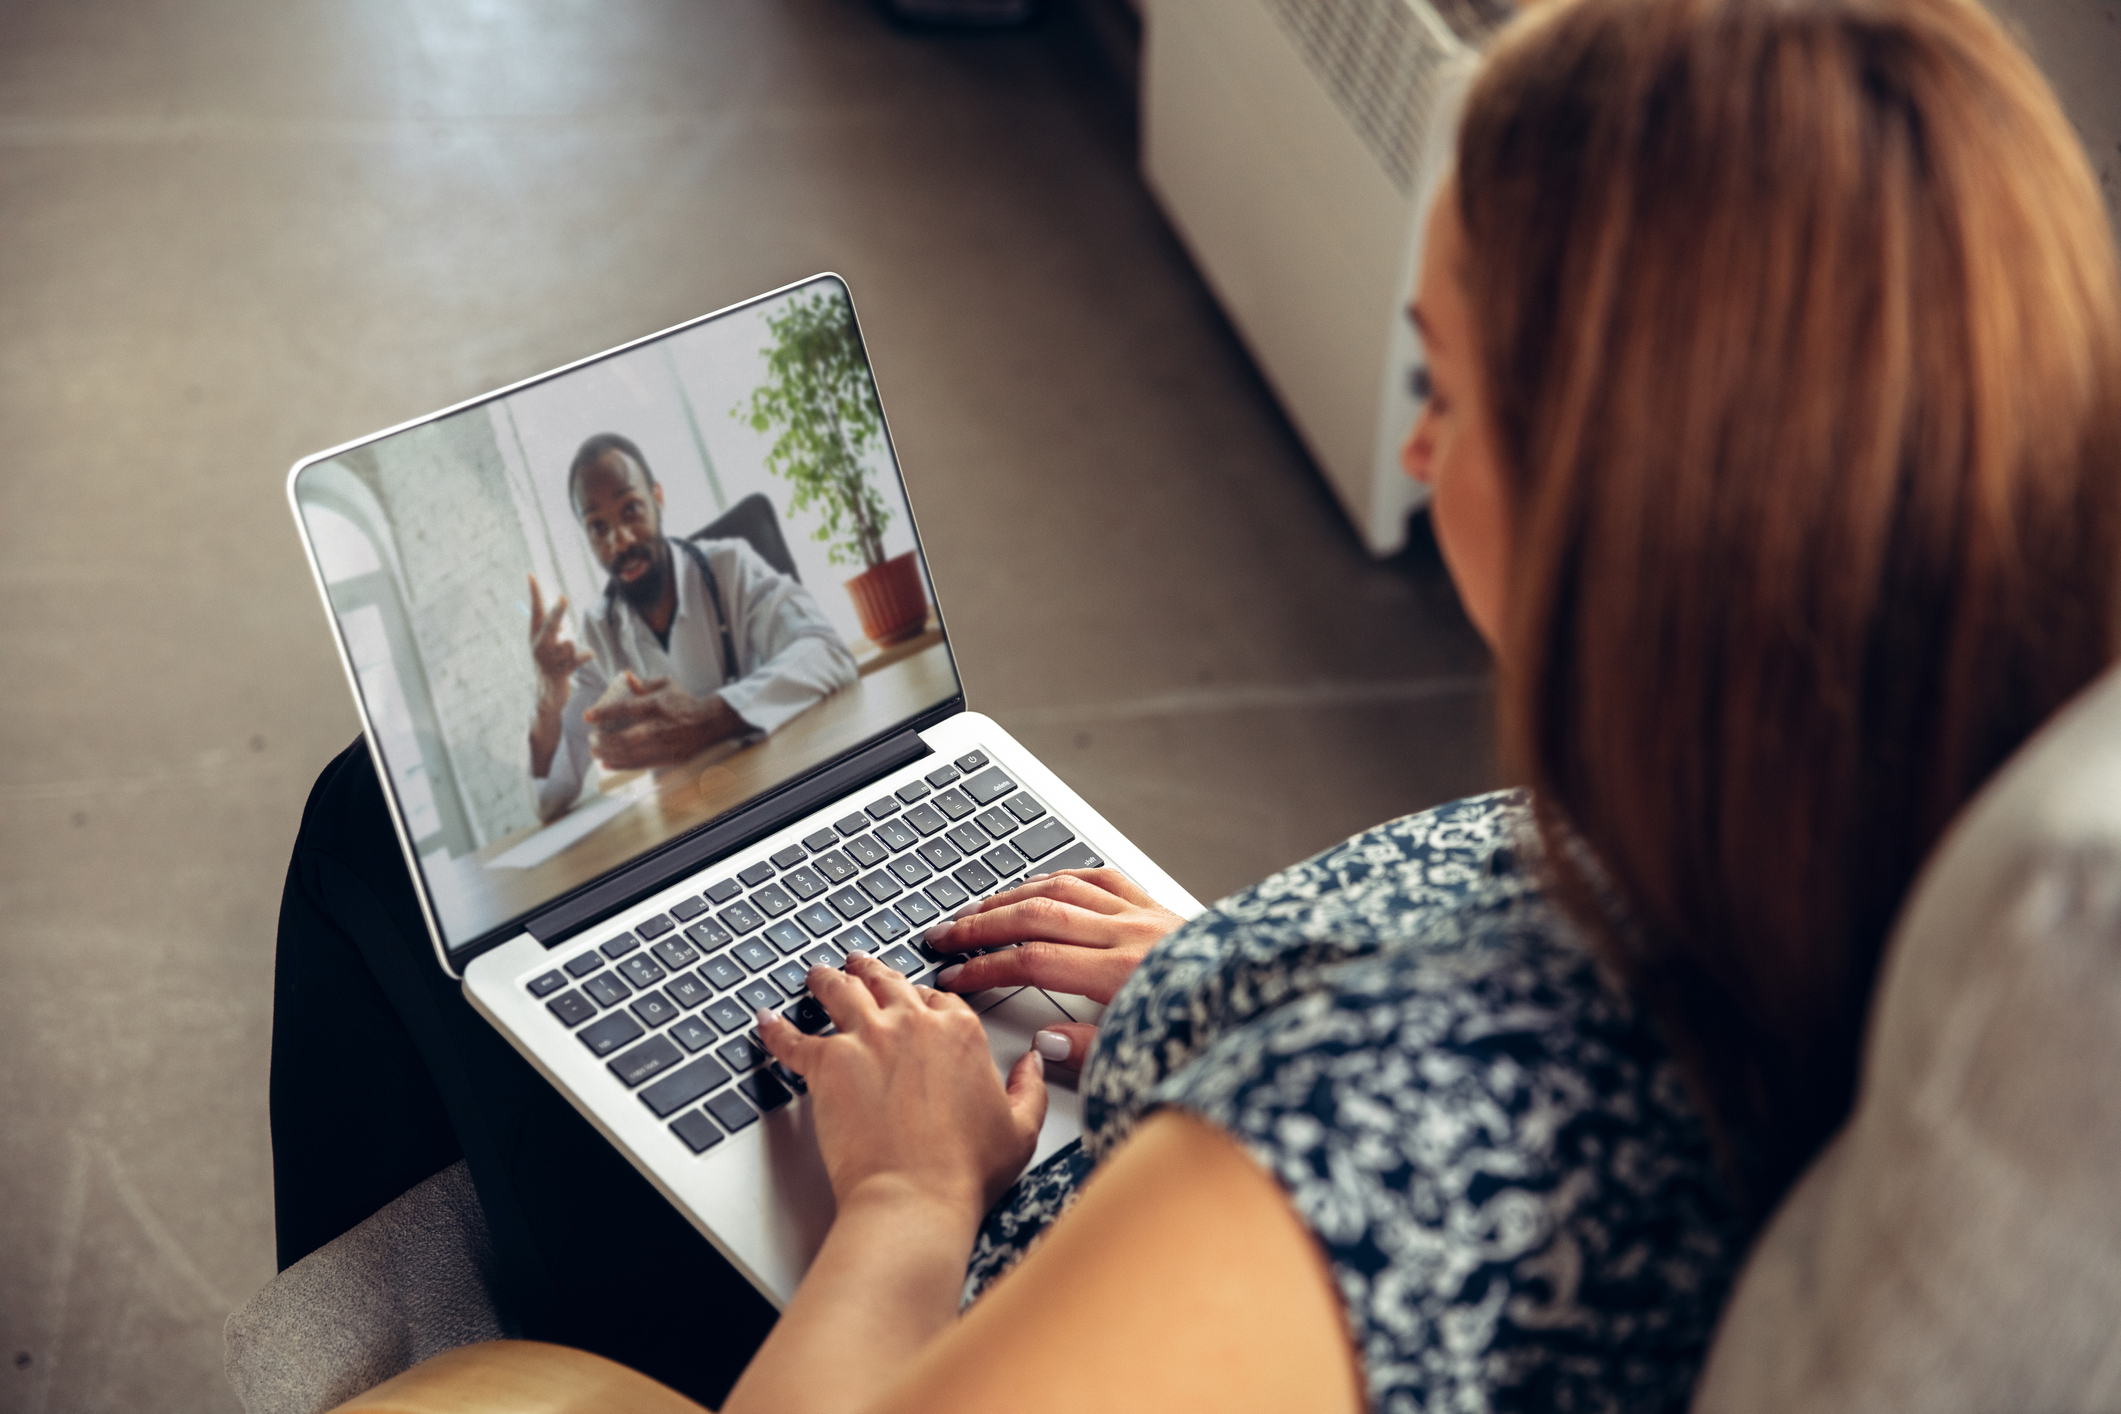 Woman on telehealth call on laptop with male doctor